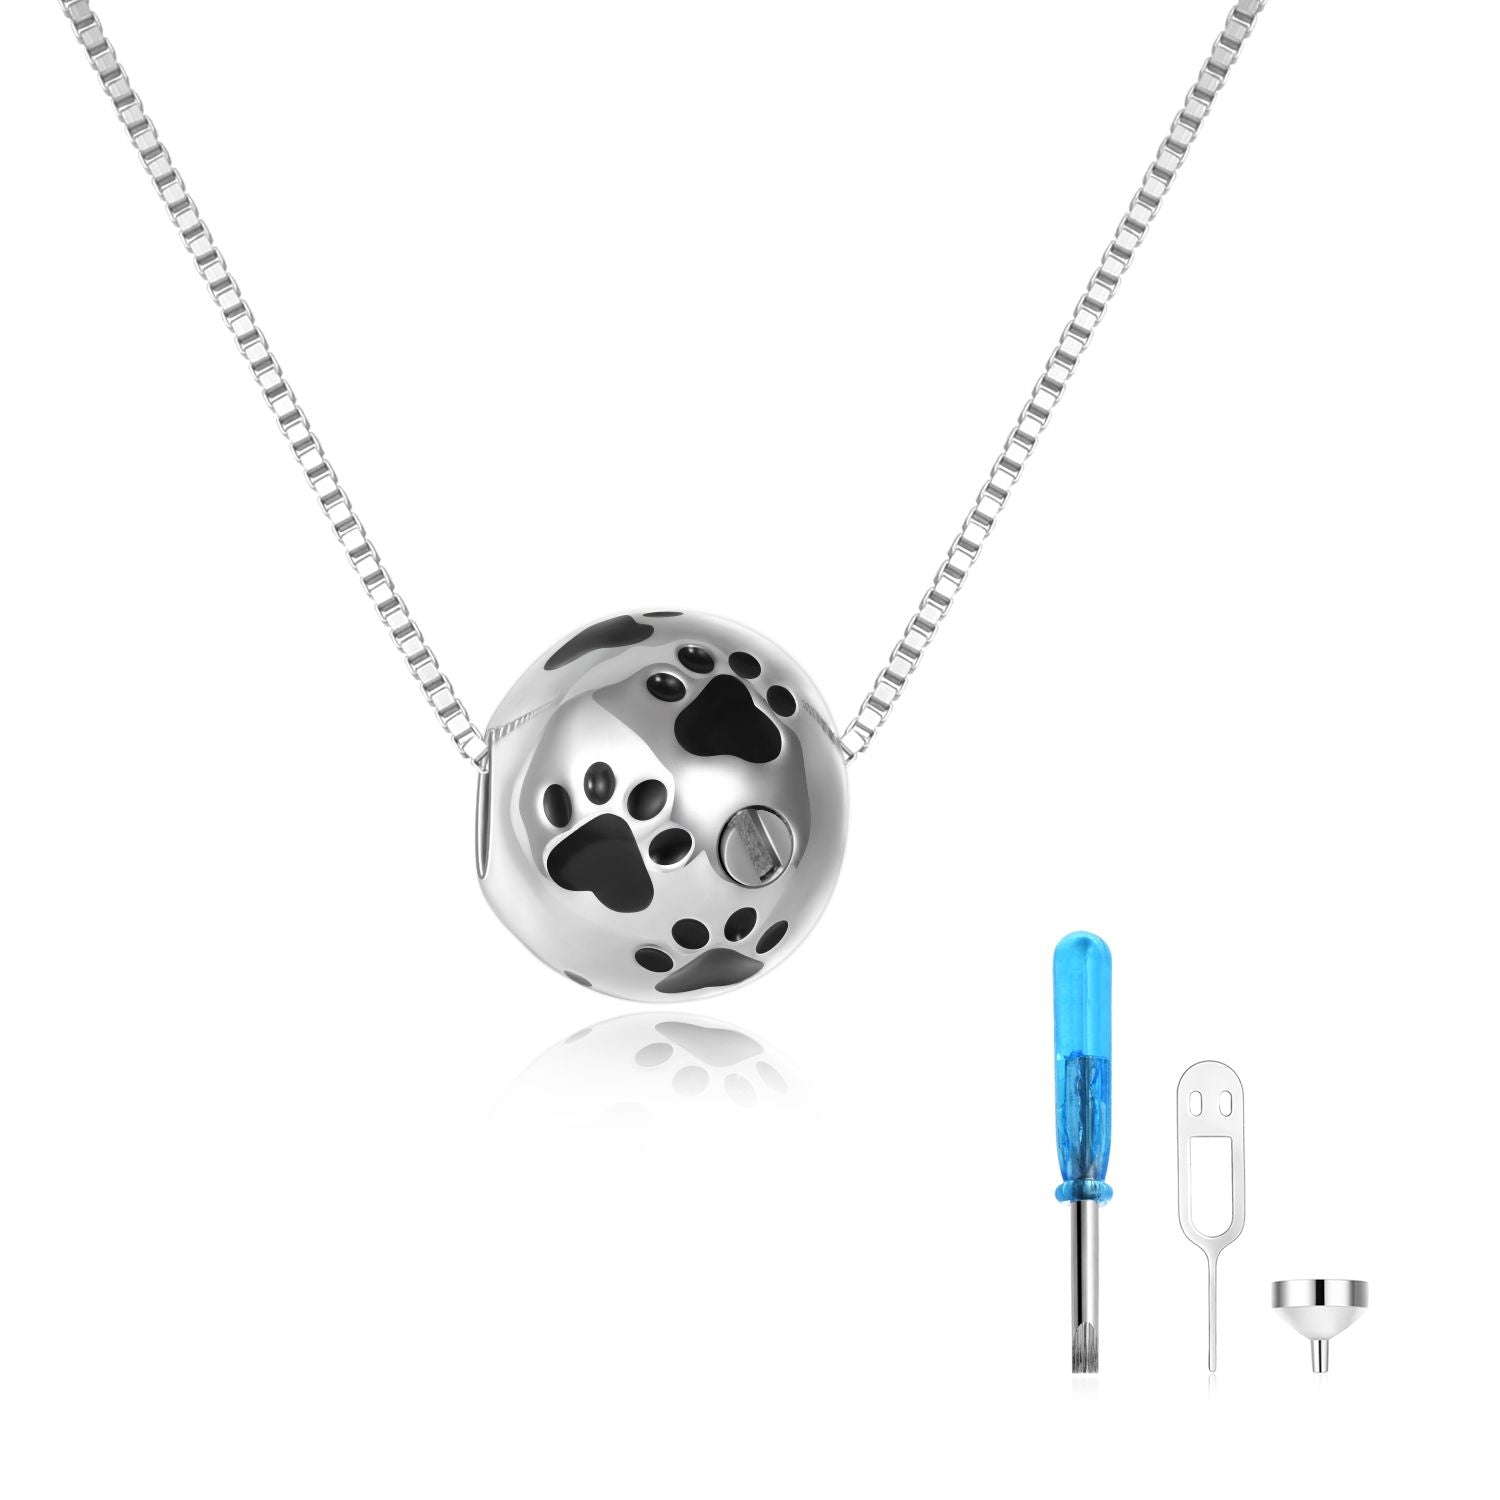 925 sterling silver spherical animal urns necklaces Cremation Jewelry for Ashes - onlyone